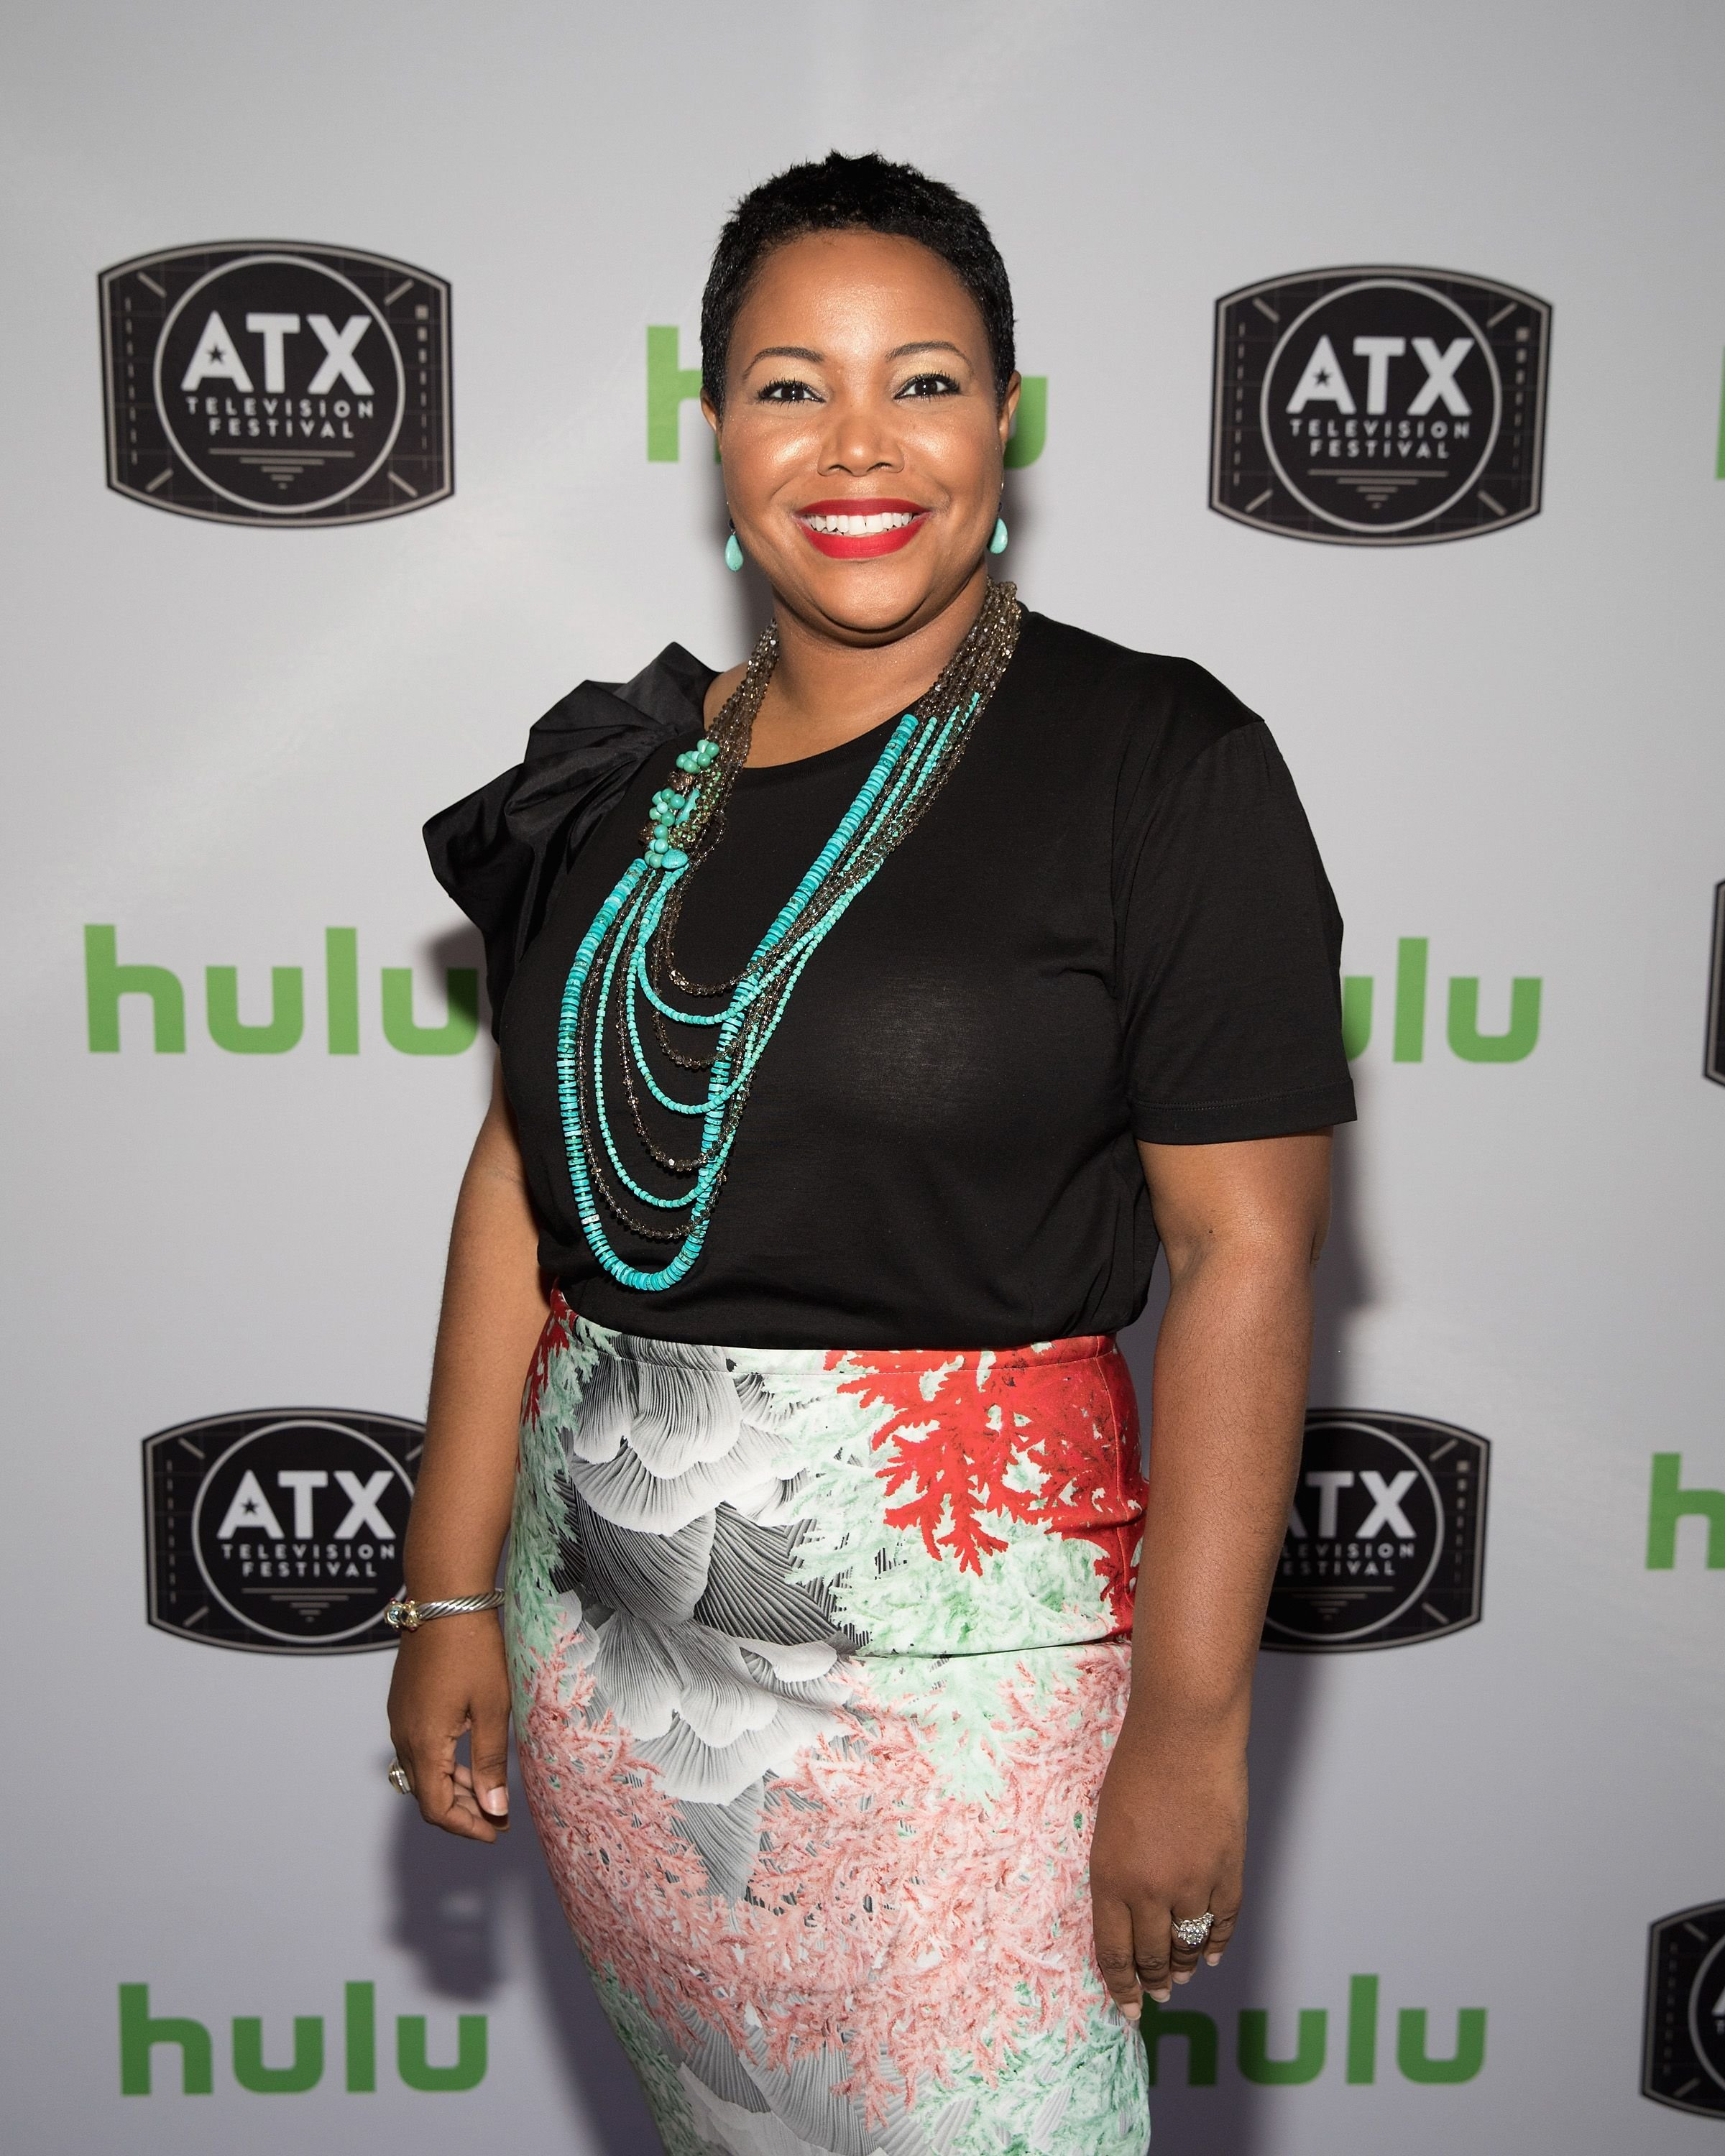 Kellie Shanygne Williams at the Hulu Badgeholder Lounge during the ATX Television Festival at the InterContinental Stephen F. Austin on June 8, 2018 | Photo: Getty Images